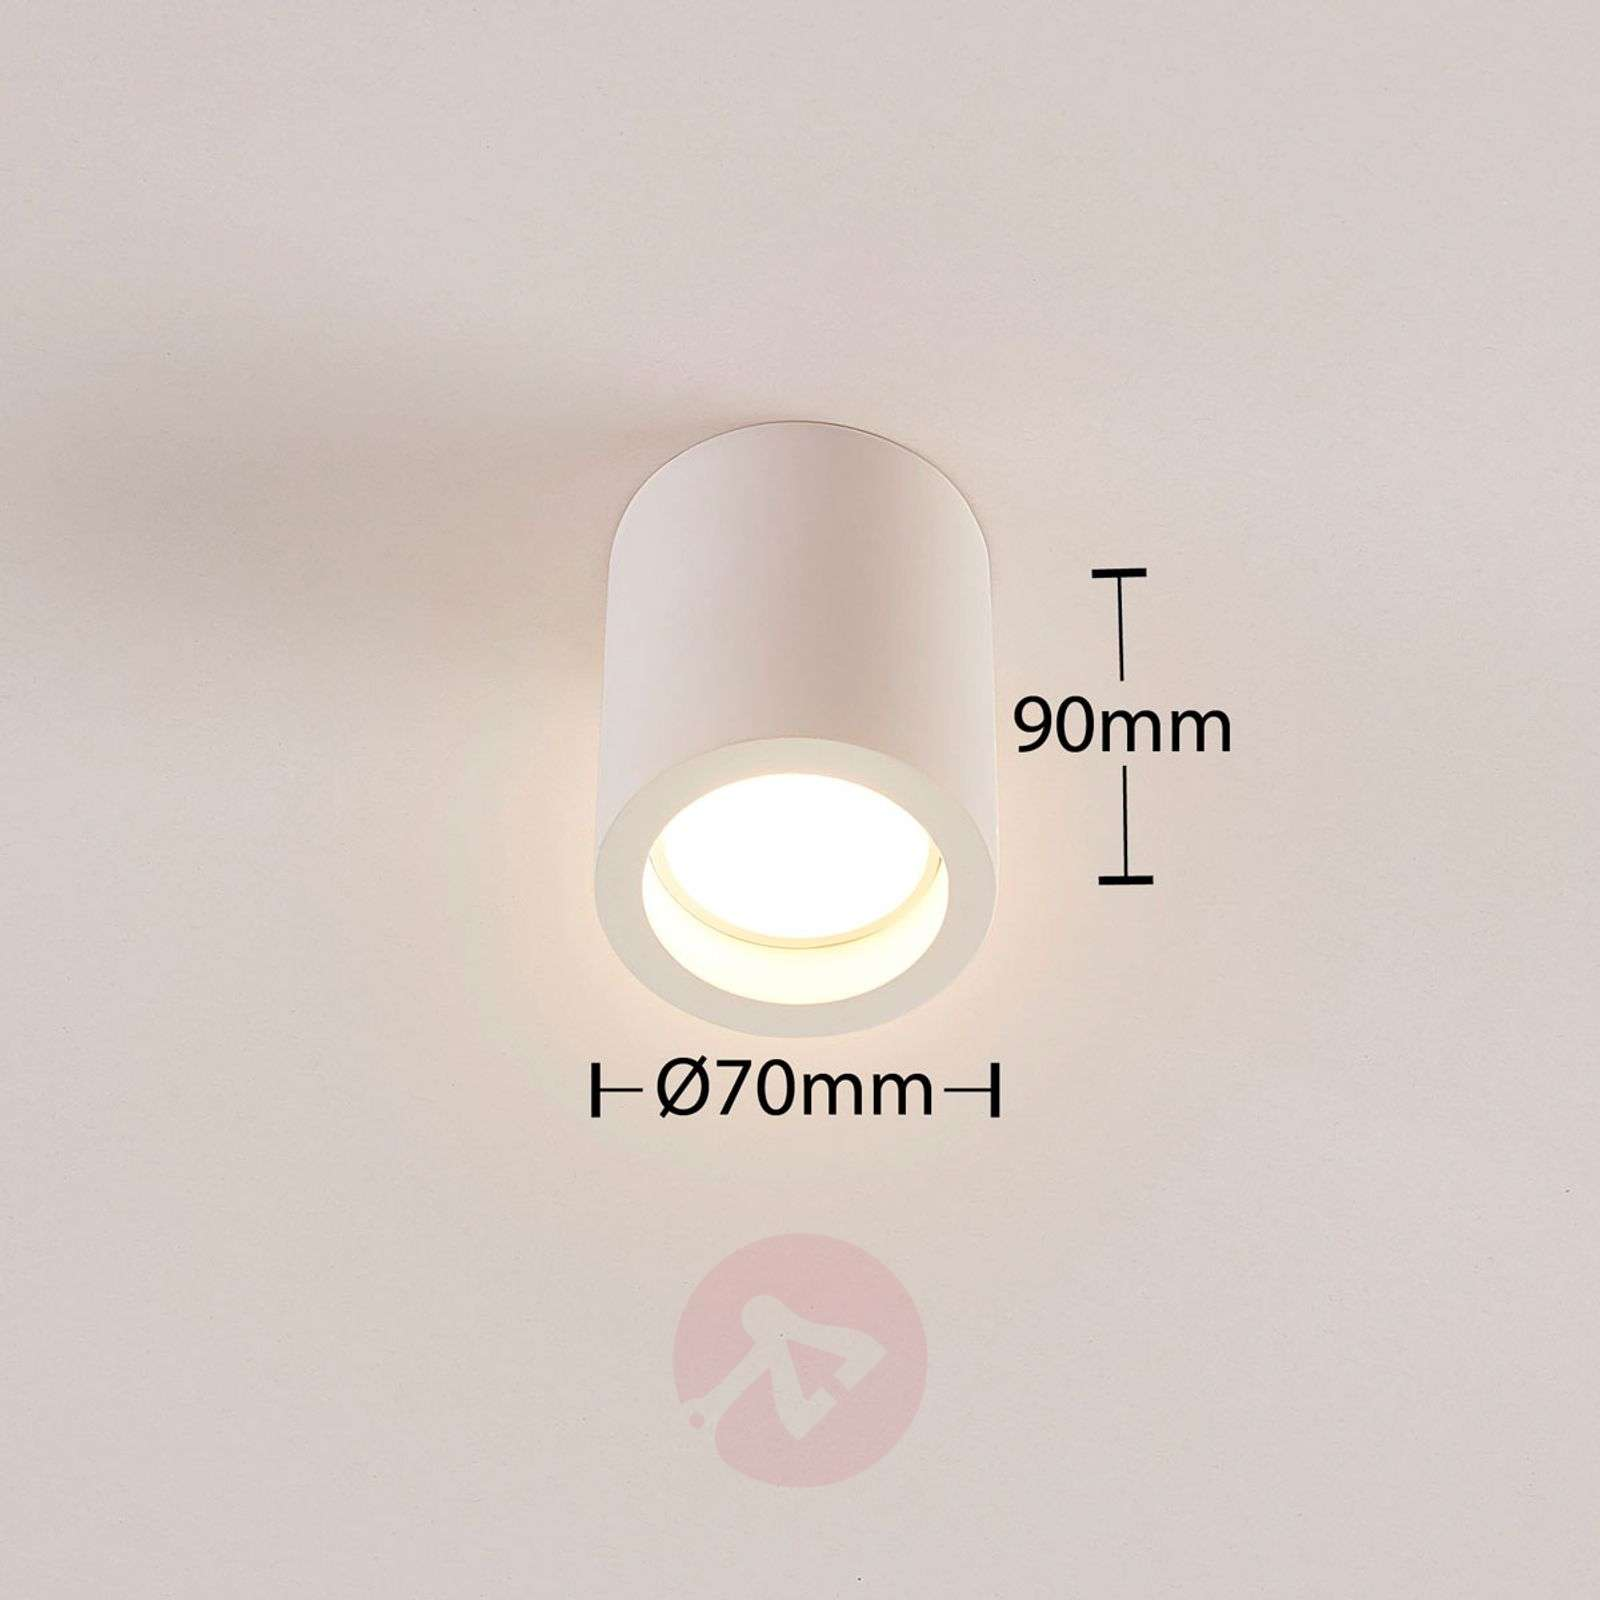 Compatto downlight LED Annelies, easydim-9621357-01